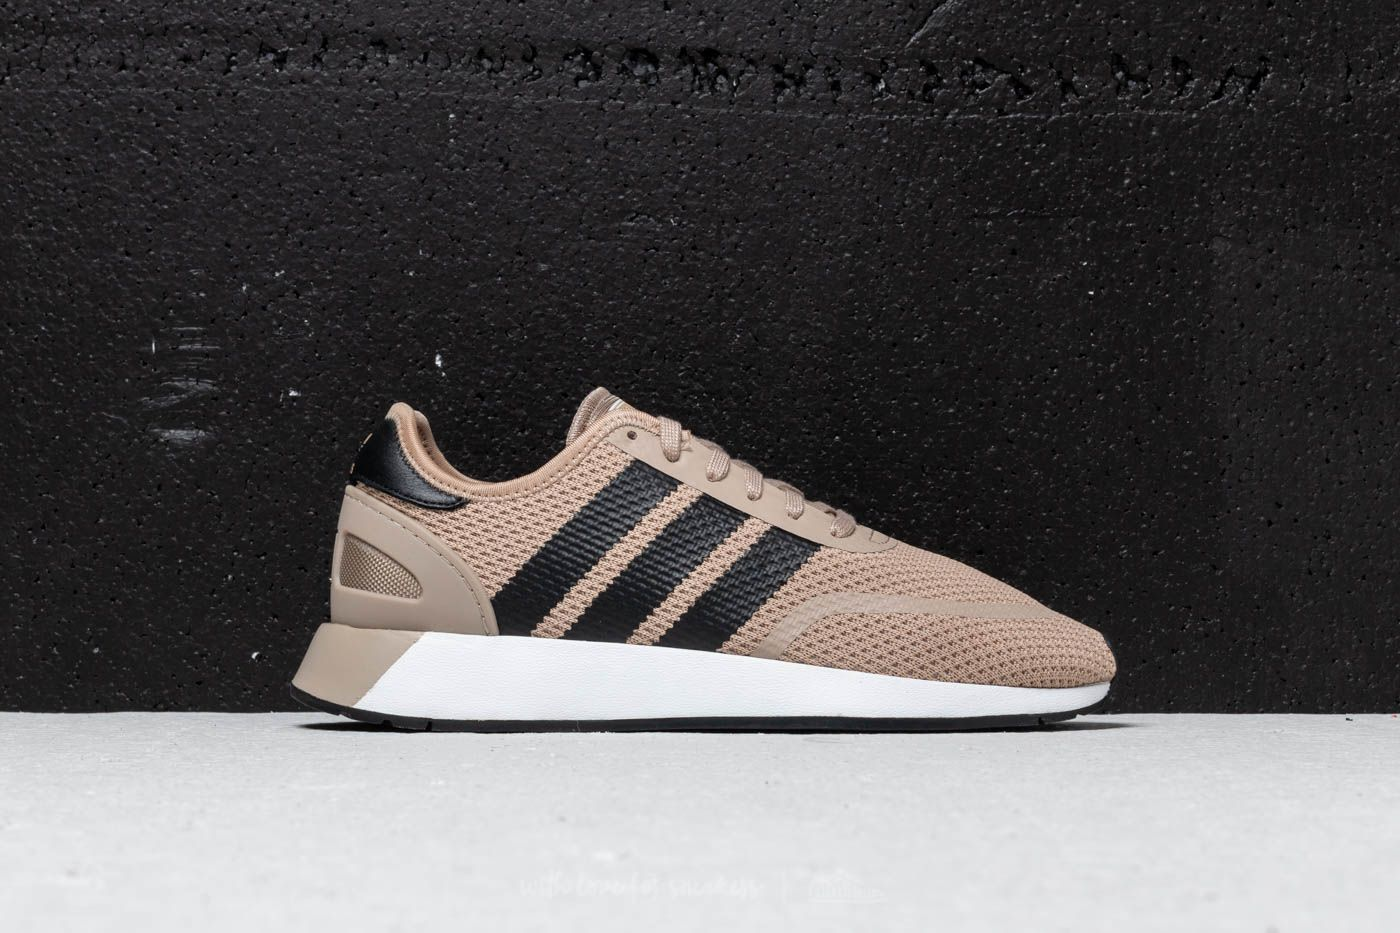 32642c35279c adidas N-5923 Trace Khaki  Core Black  Ftw White at a great price